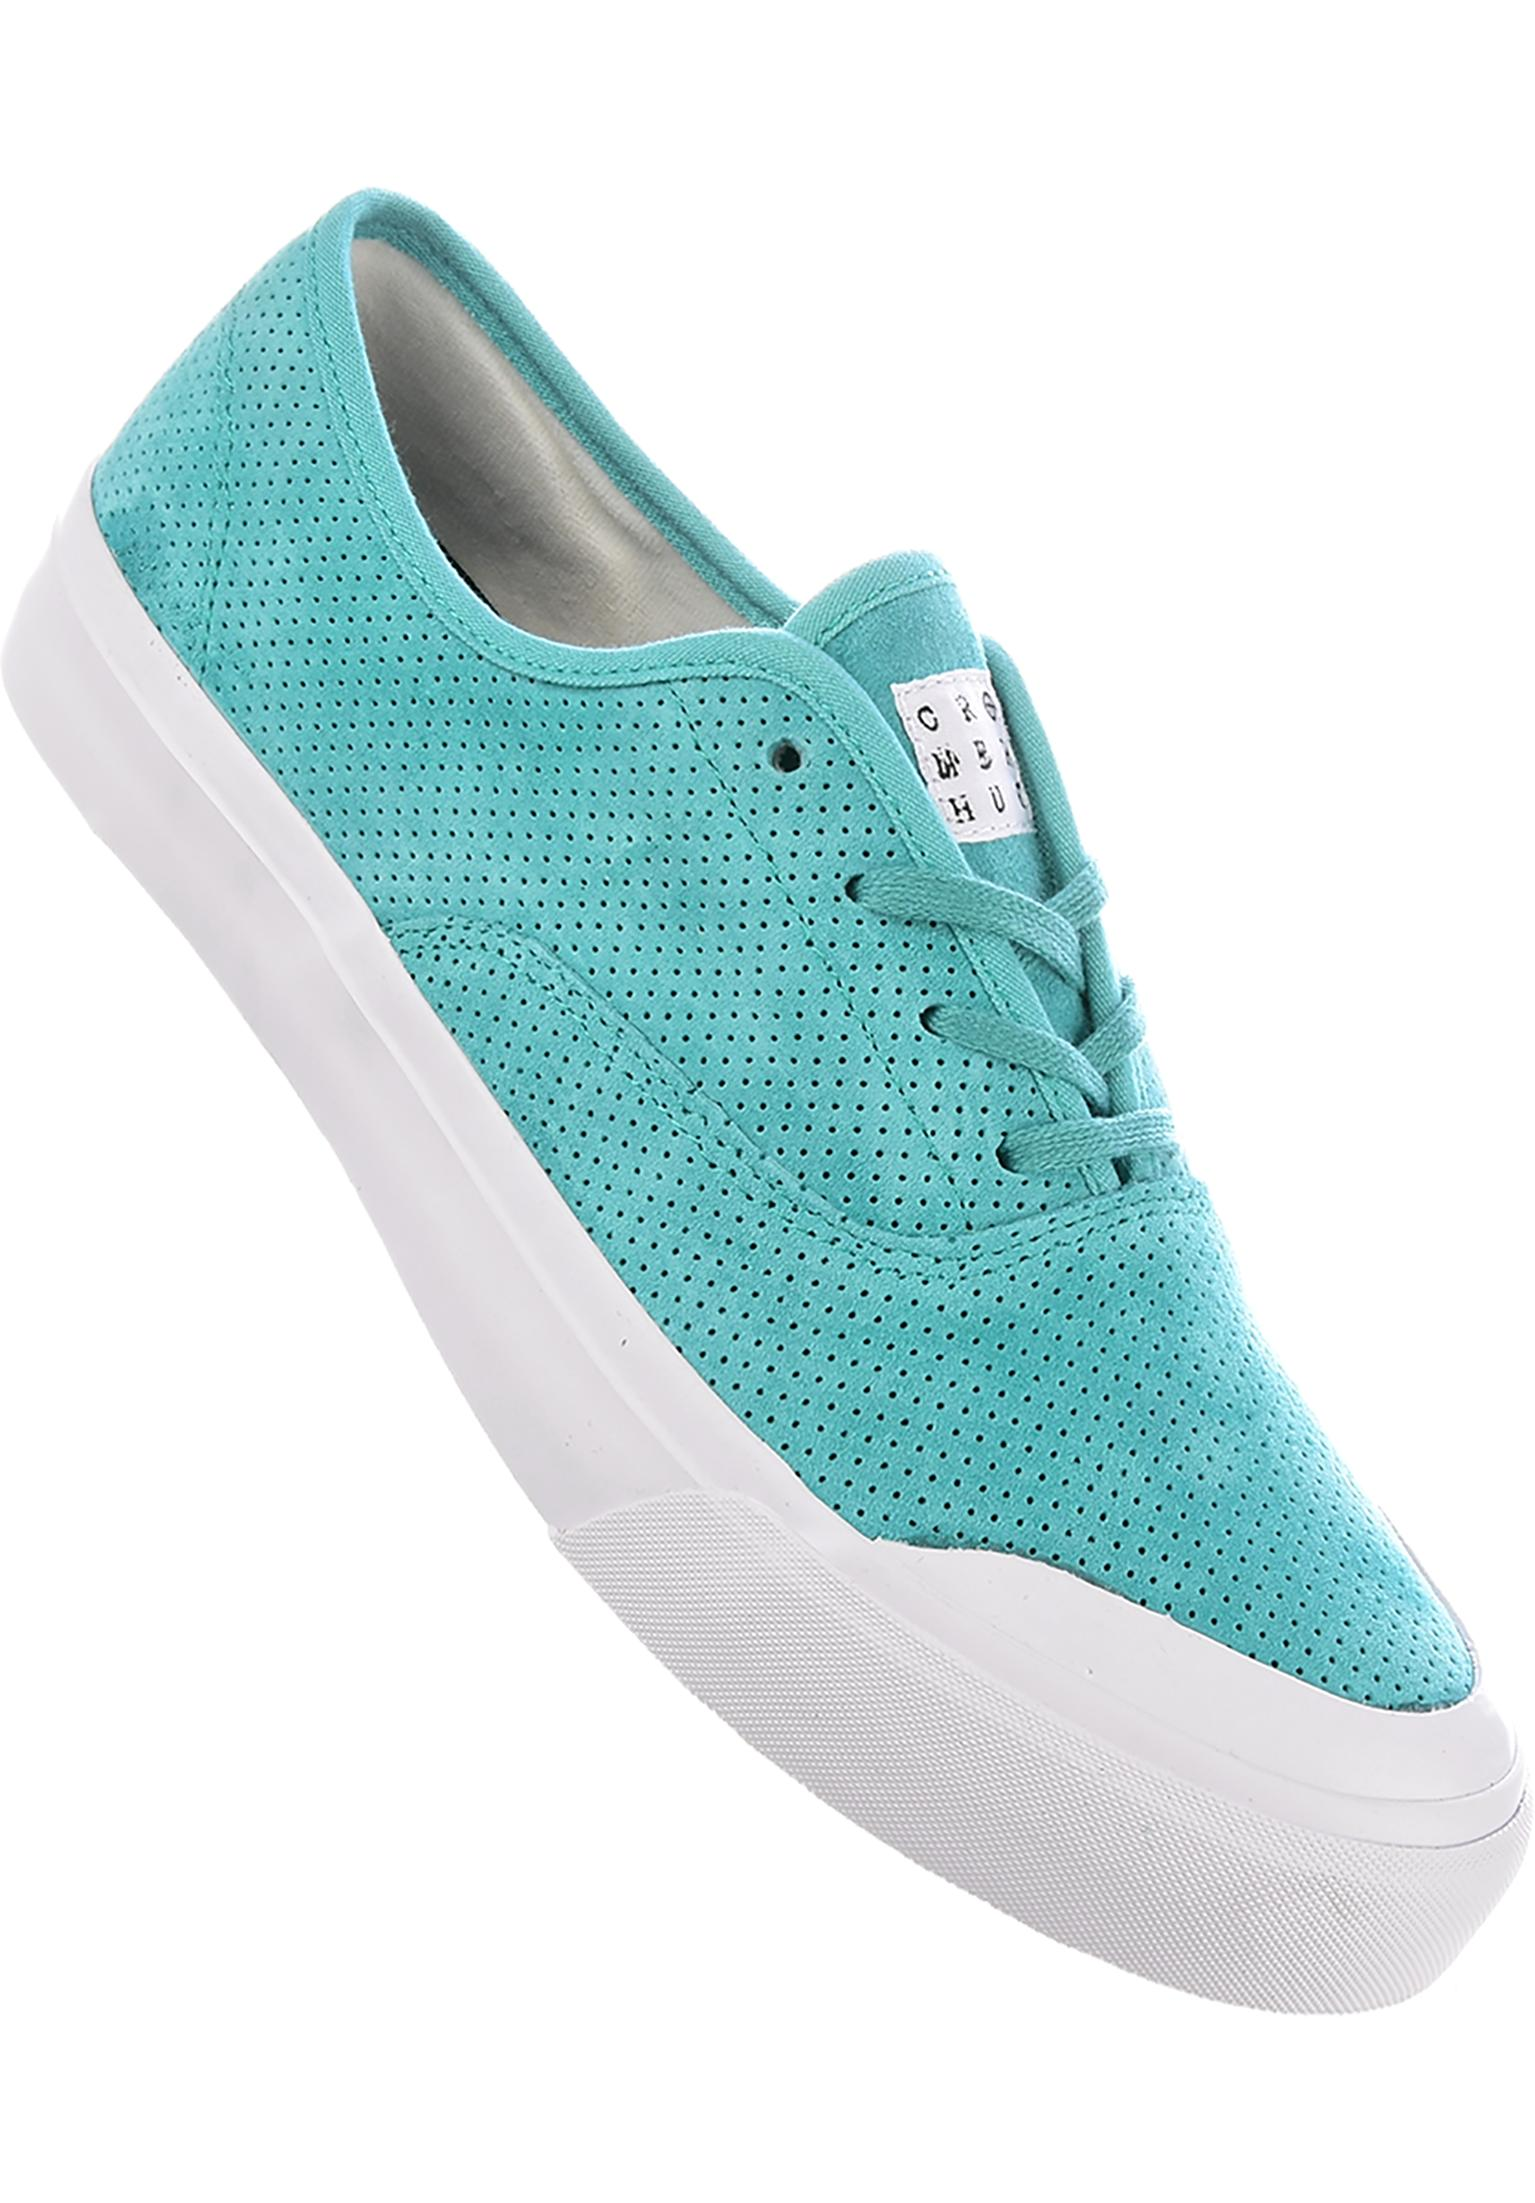 c735bd1c68a312 Cromer HUF All Shoes in atlantic for Men